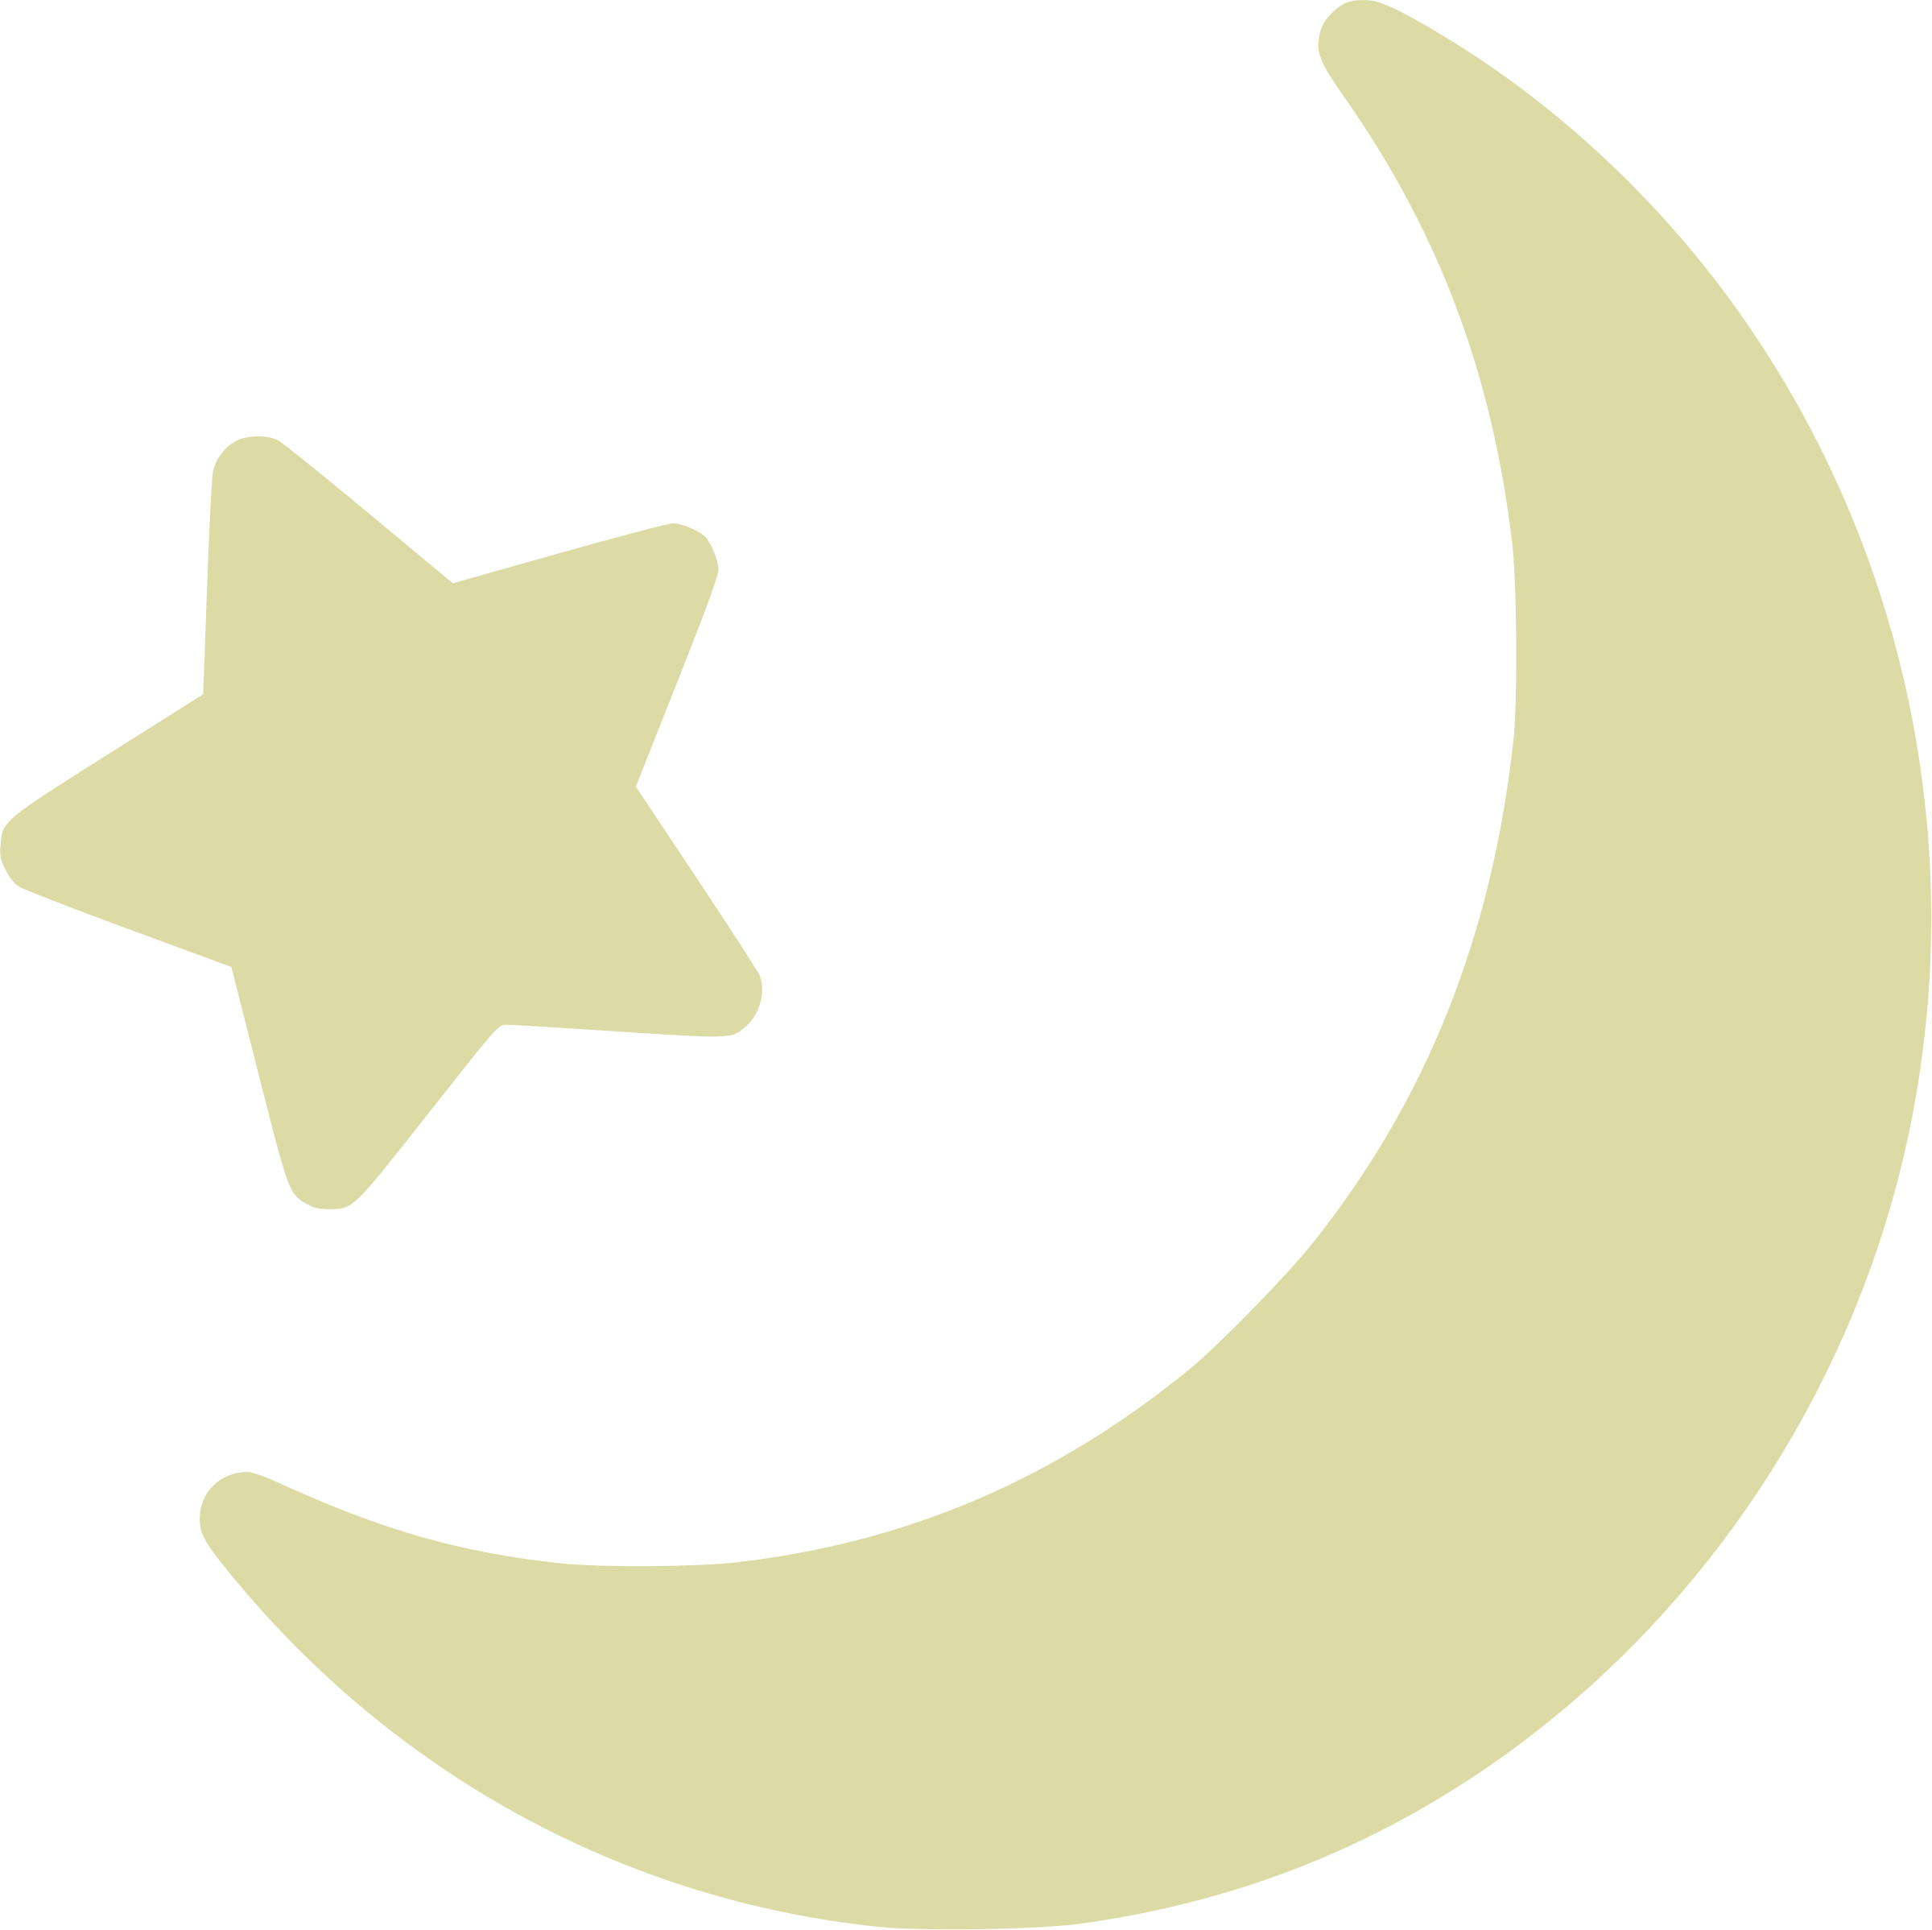 Pale Moon And Star icon by phidari